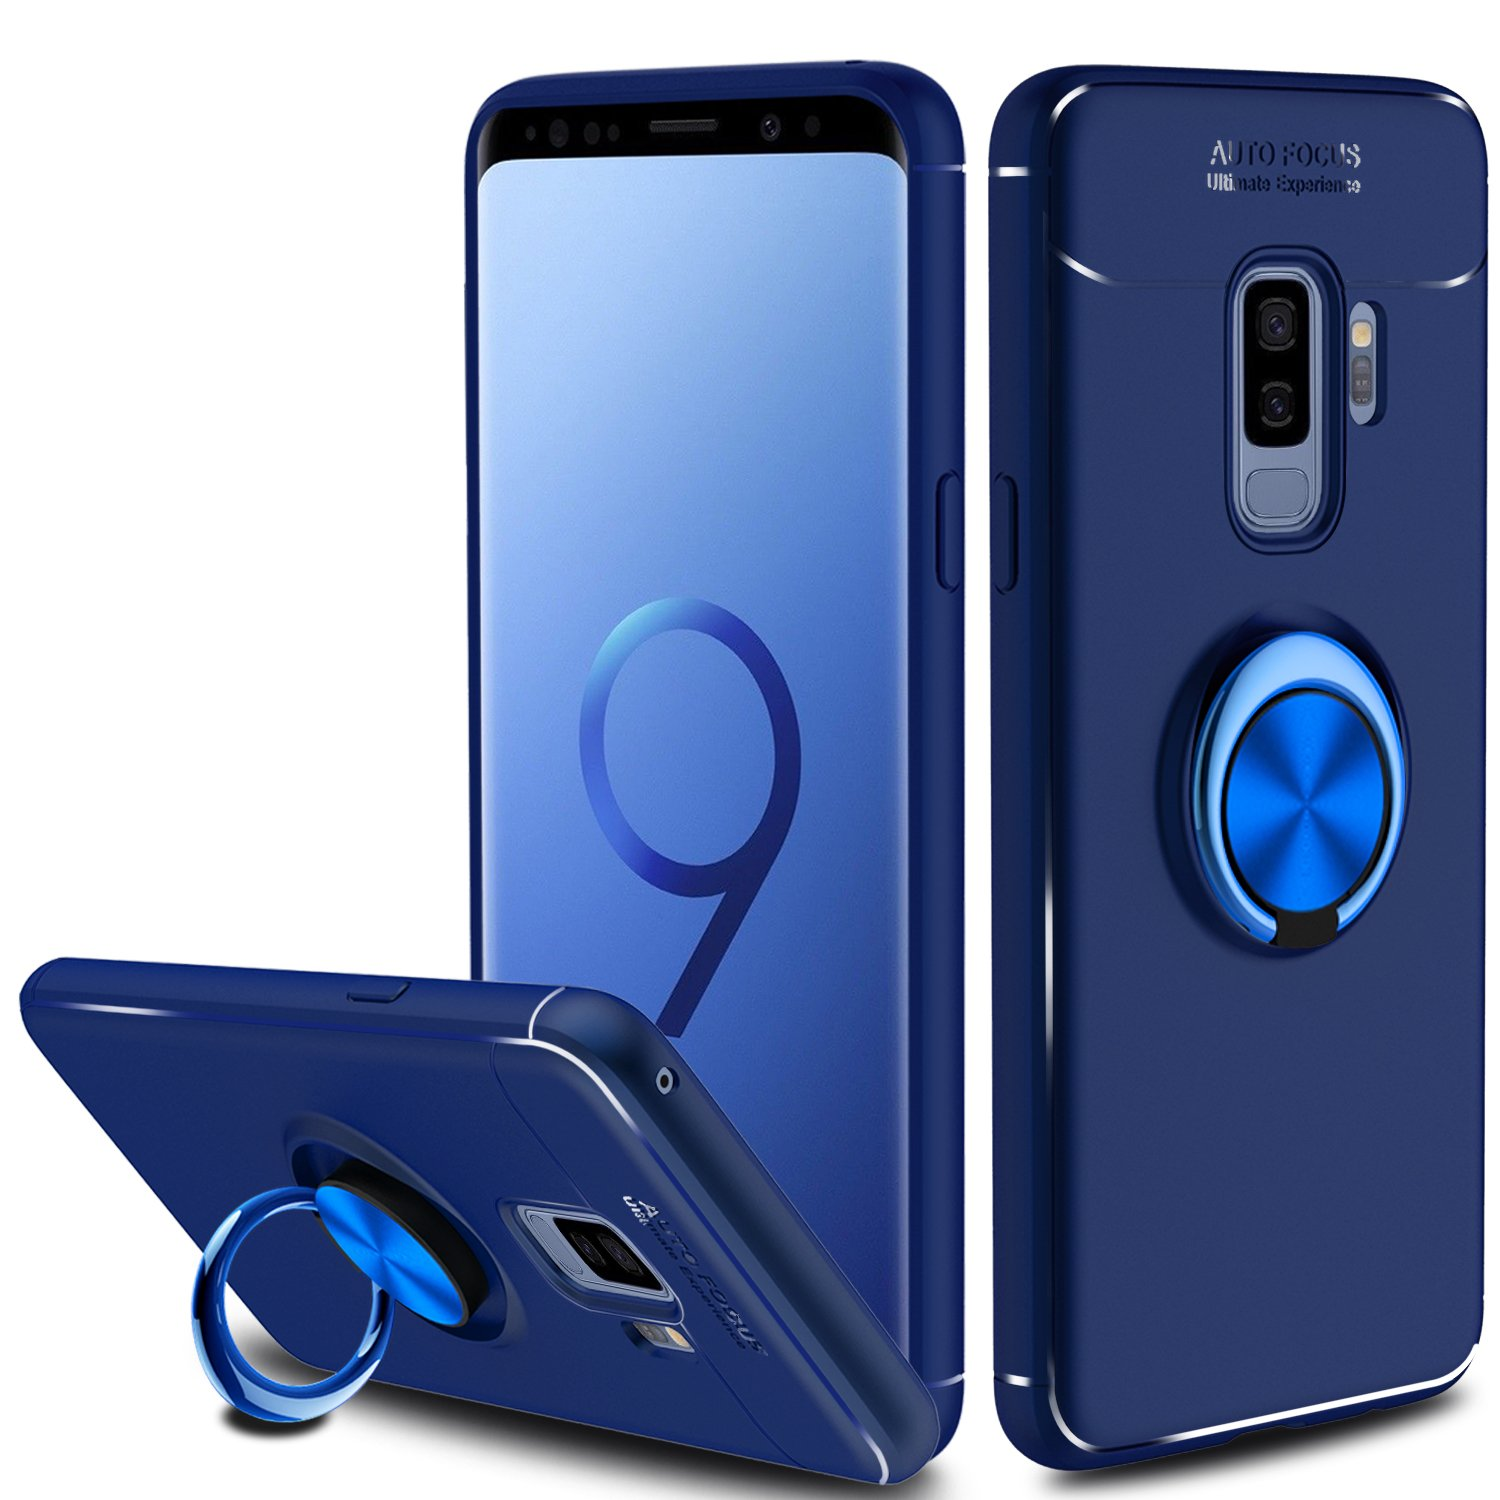 hot sales bfc41 4e454 Innens for Samsung Galaxy S9 Plus Case, Anti-Scratch Shockproof Slim 360  Degree Rotation Metal Ring Holder Kickstand with Magnetic Case Cover for ...